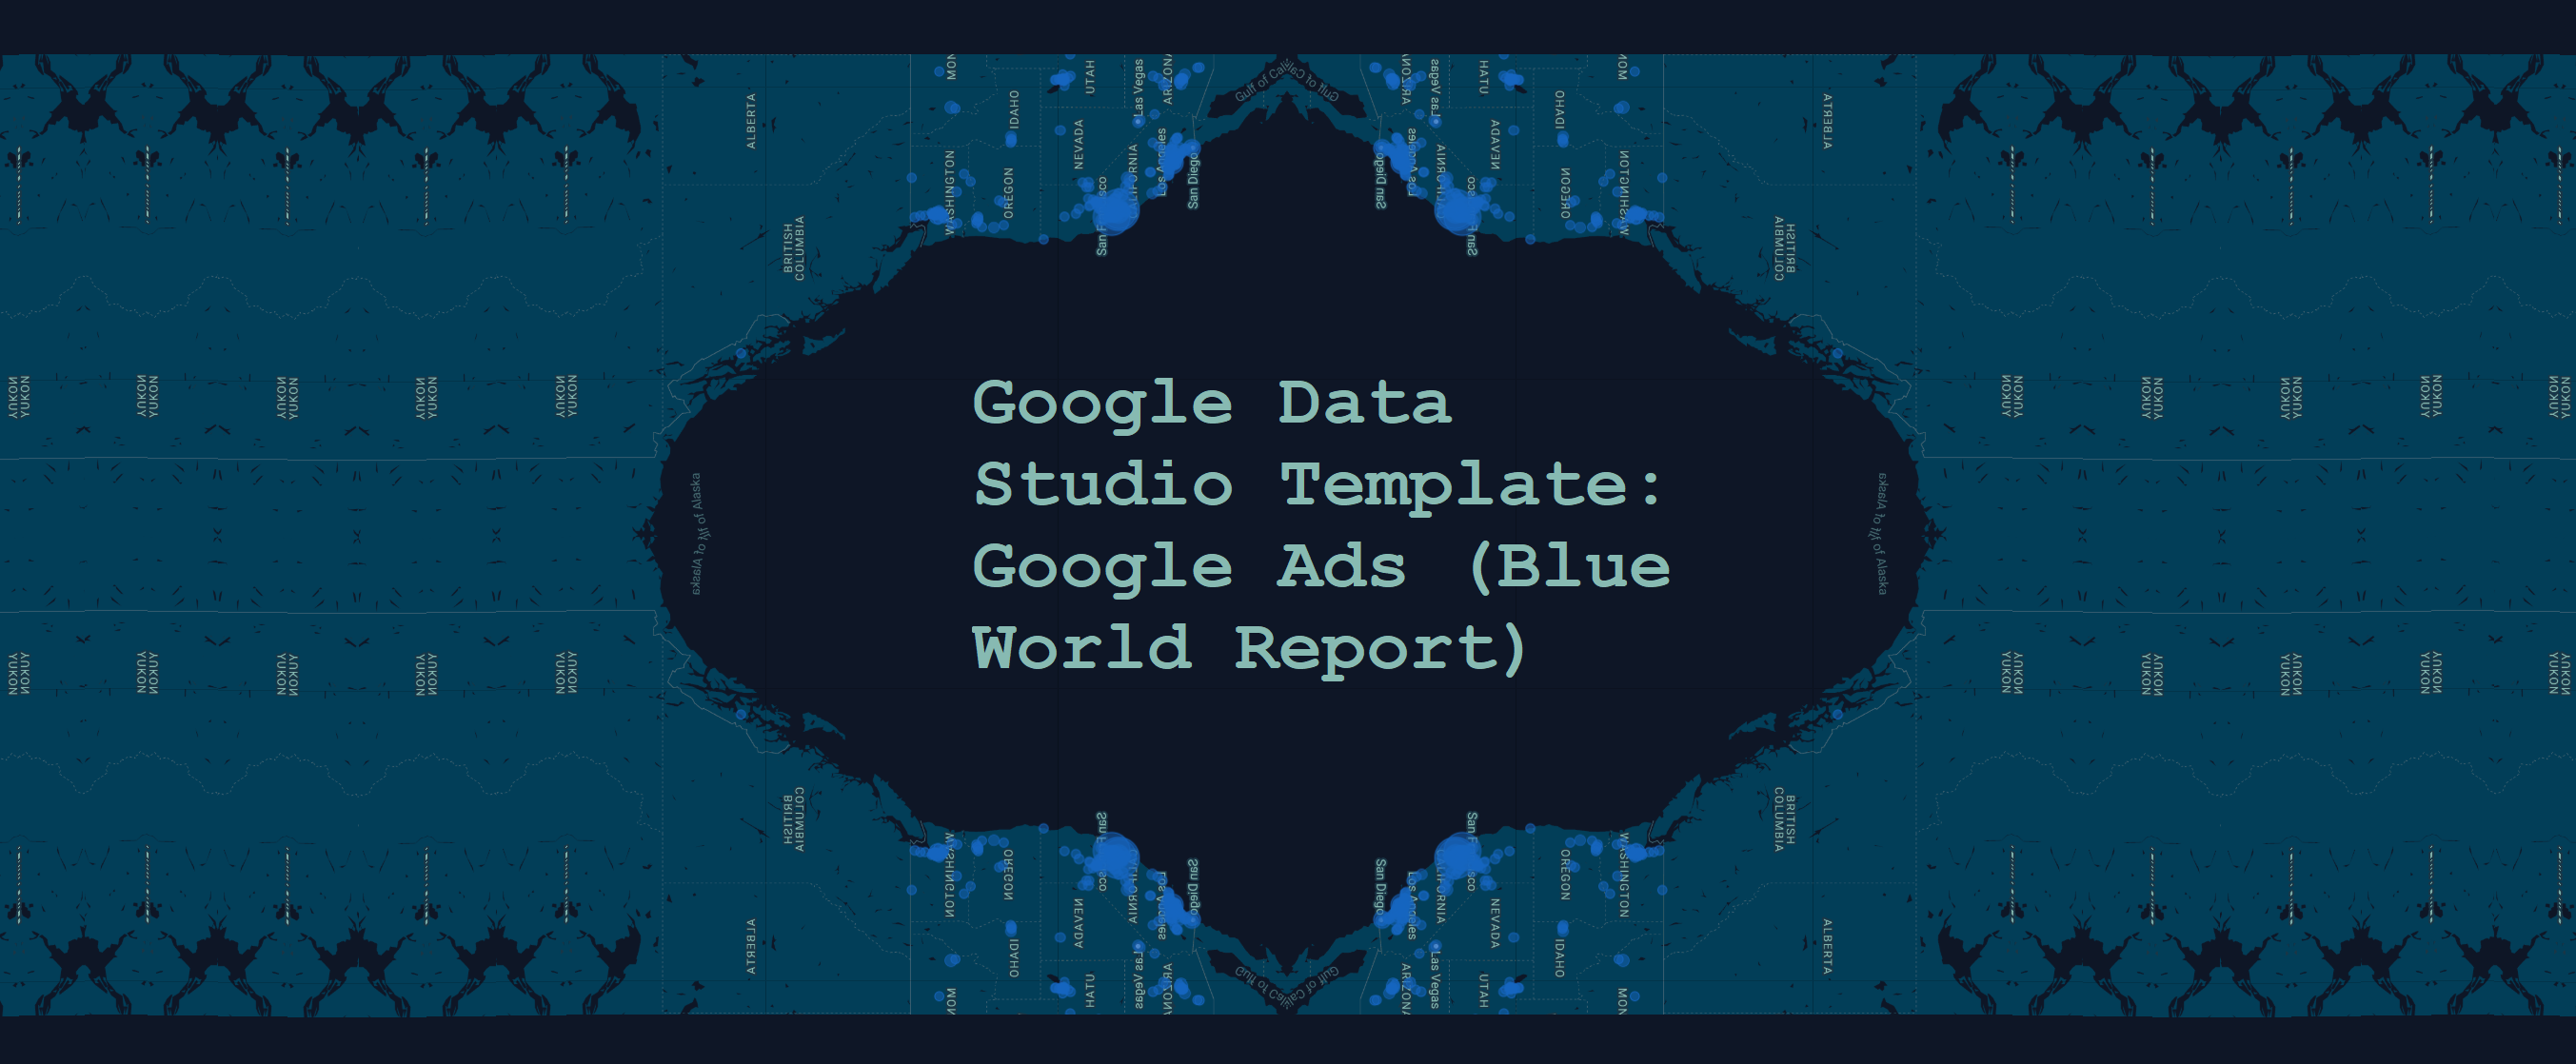 Google Data Studio Template Google Ads Blue World Report